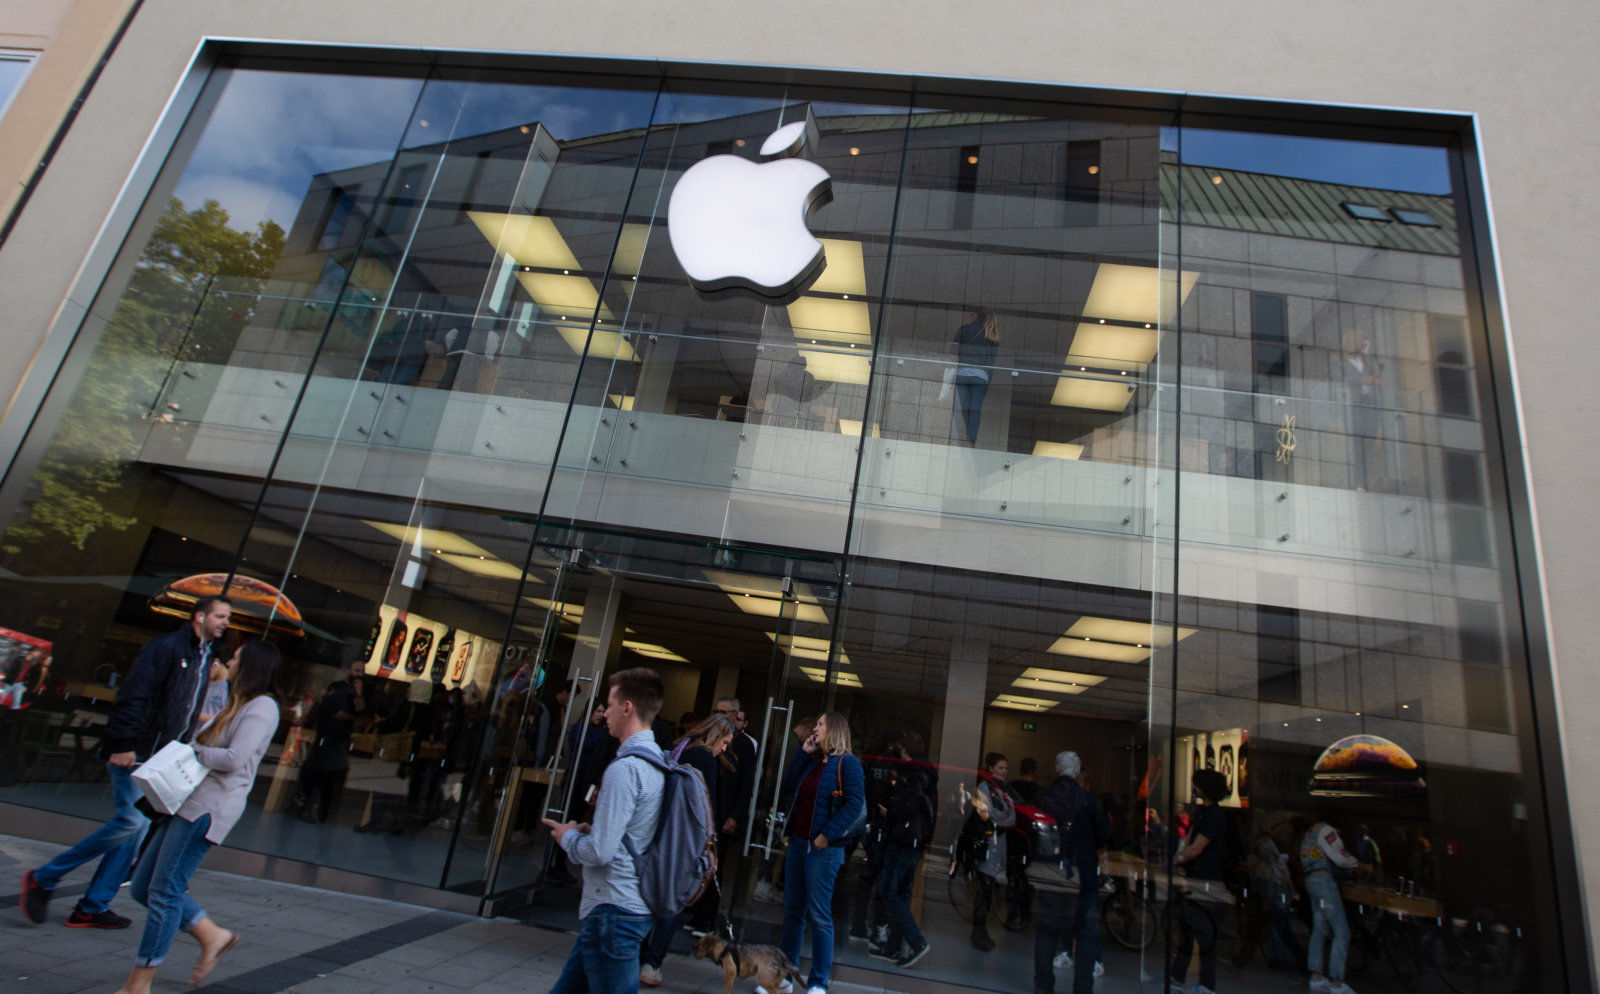 The Apple Store in Munich, Germany seen from outside. (Photo by Alexander Pohl/NurPhoto/Sipa USA)